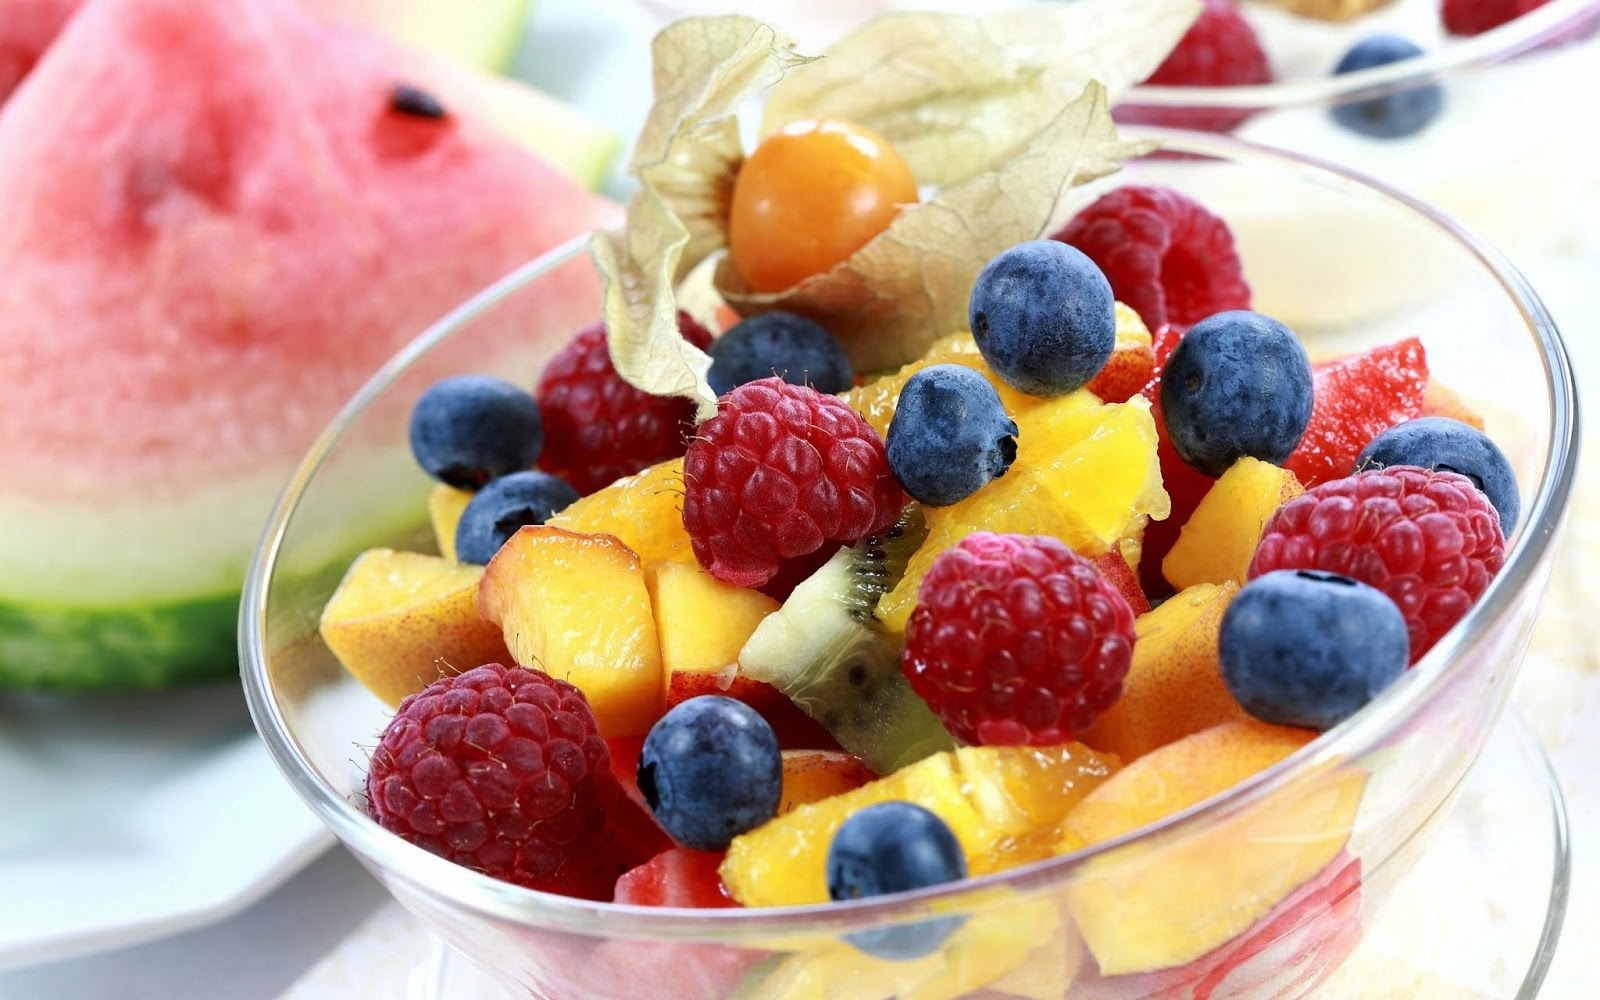 fruits-salads-hd-images